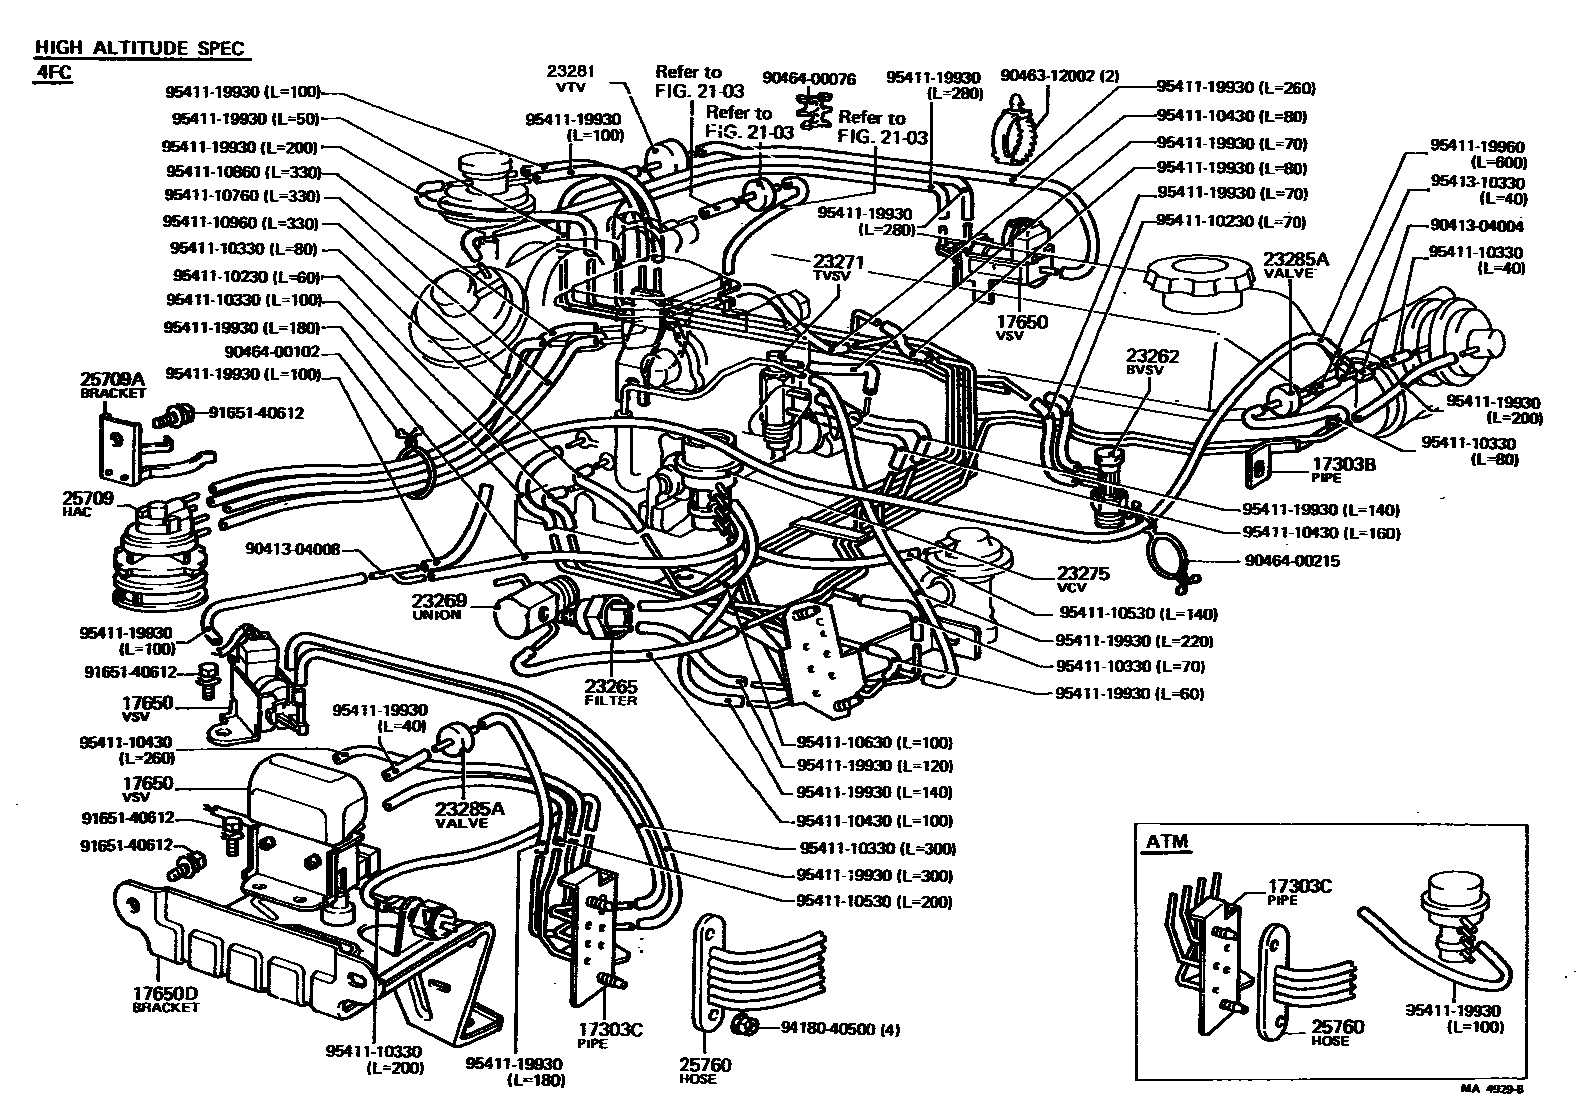 hight resolution of 1990 toyota v6 engine diagram wiring diagram paper 1990 toyota camry fuse box diagram 1990 toyota camry diagram